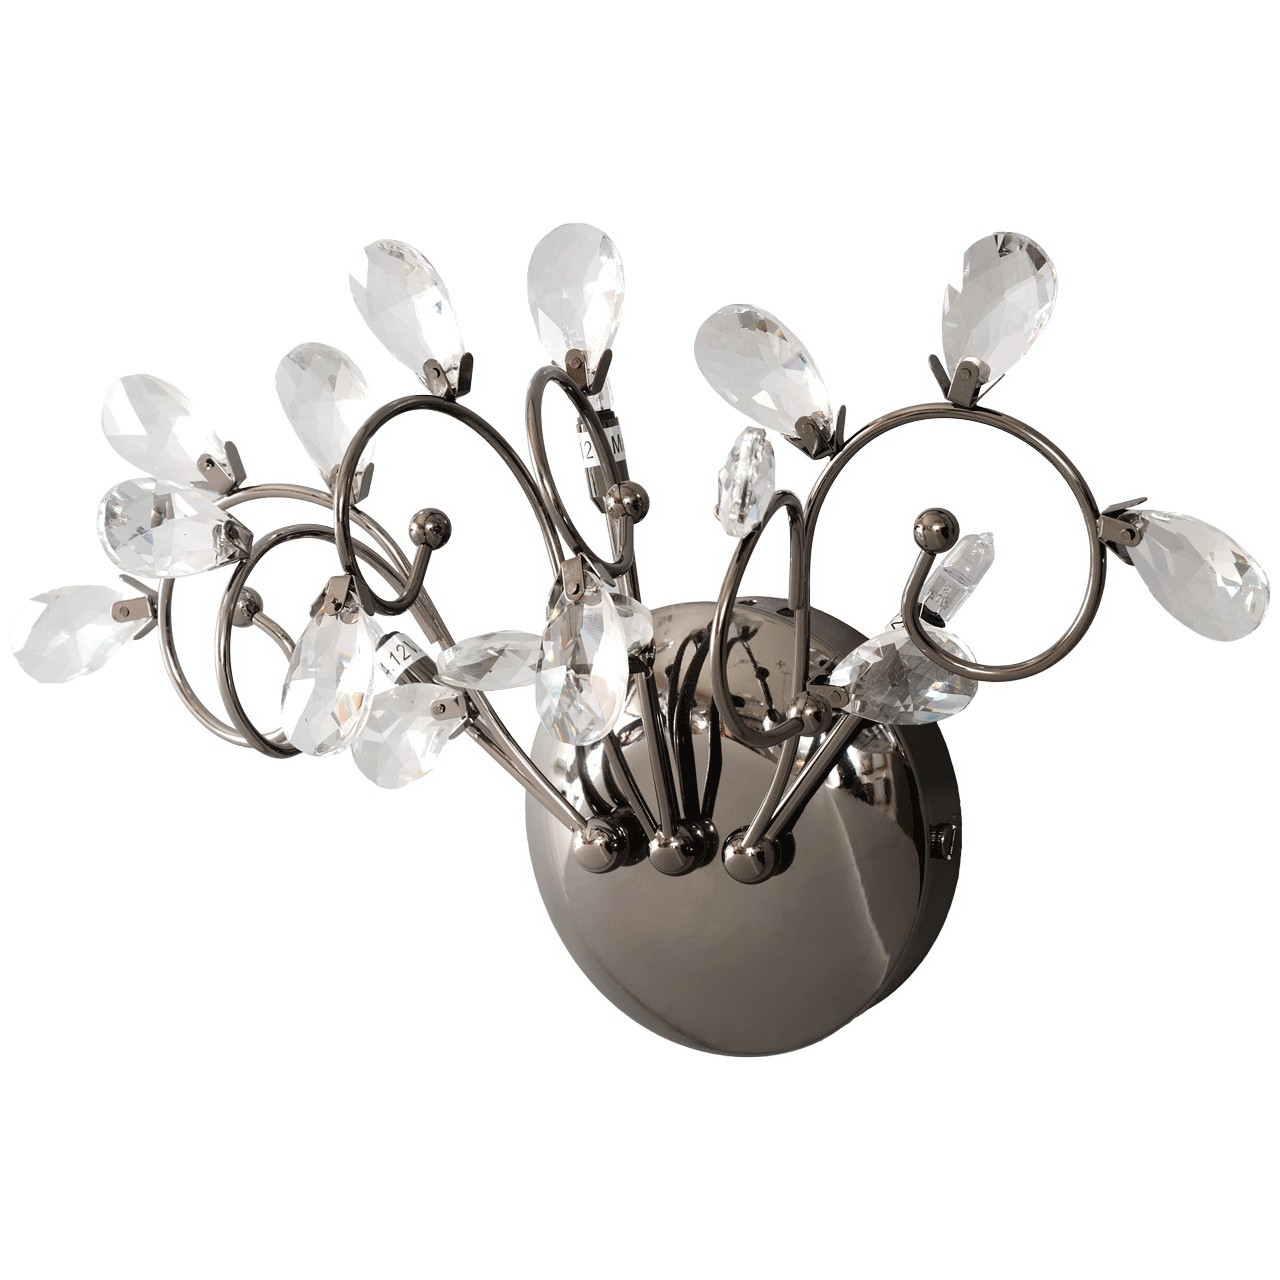 Бра MW-LIGHT Амелия 360021603